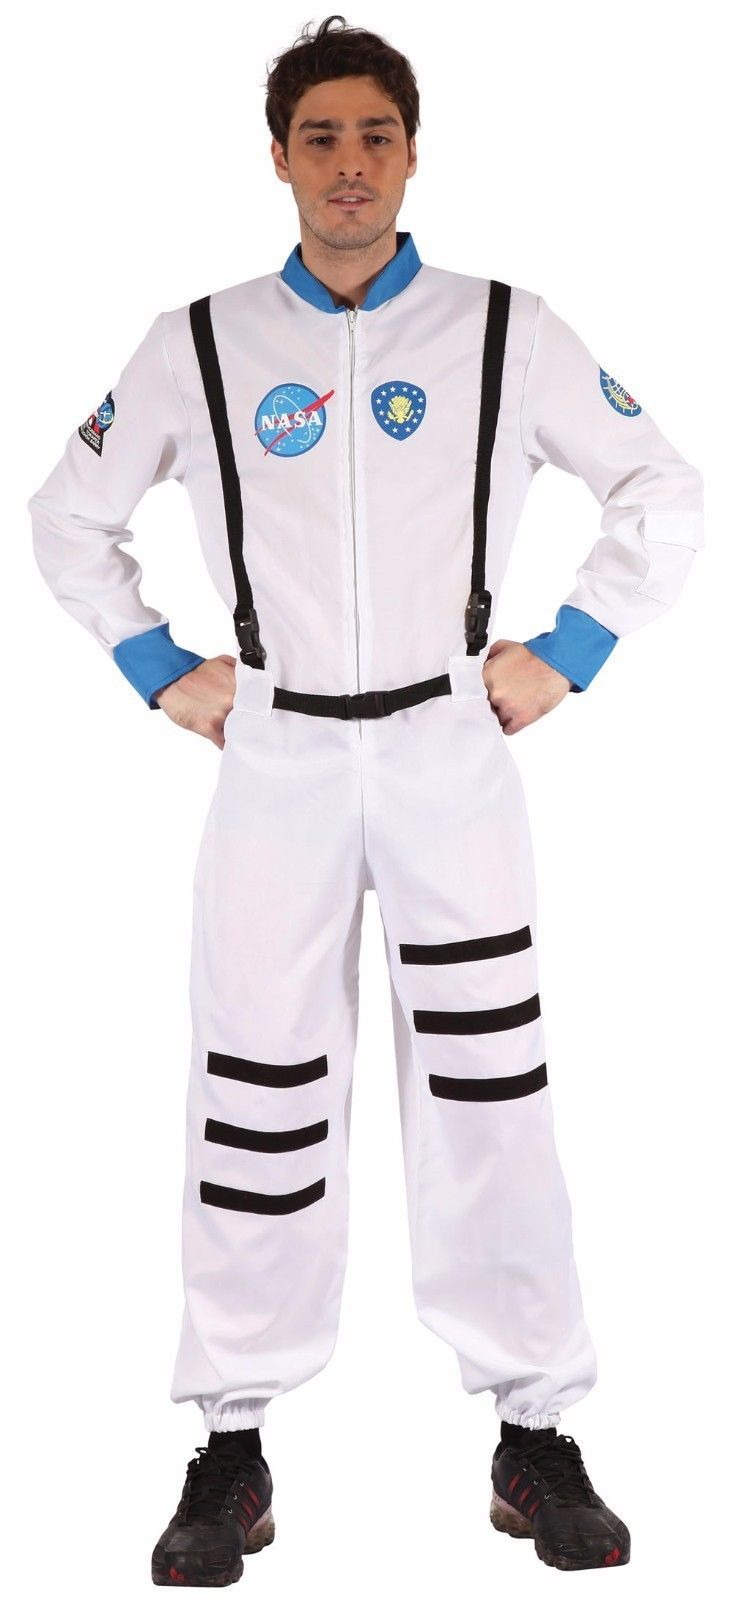 Adult Women Astronaut Spaceman Costume Cosplay Party Suit Fancy Dress Outfits